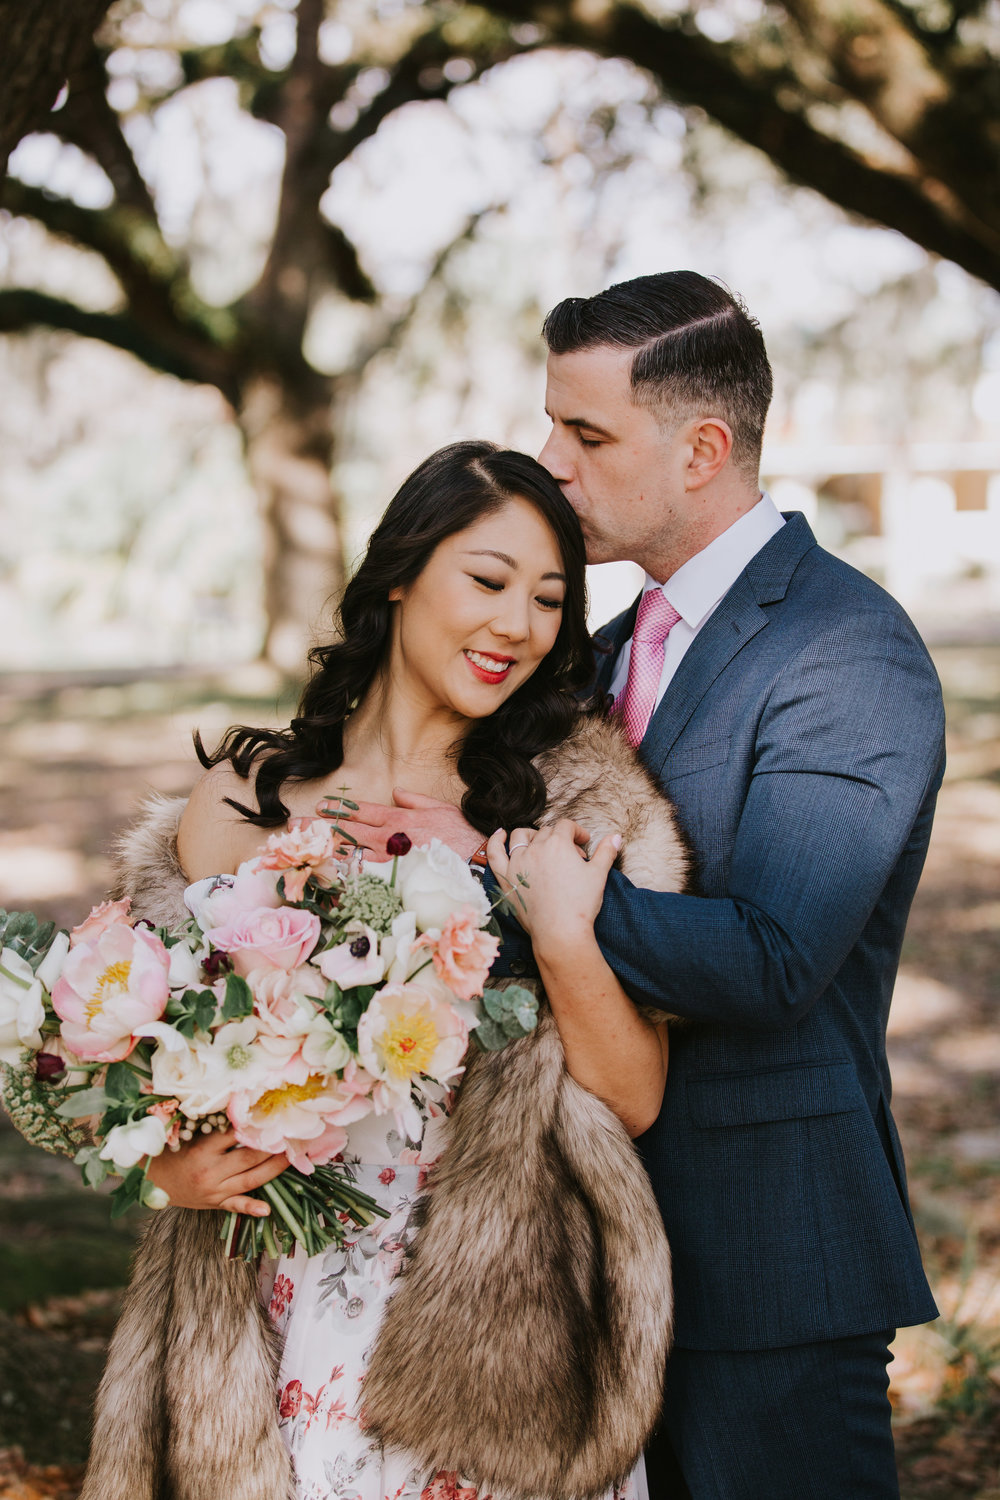 City Park Elopement New Orleans Wedding Photographer Ashley Biltz Photography17.jpg